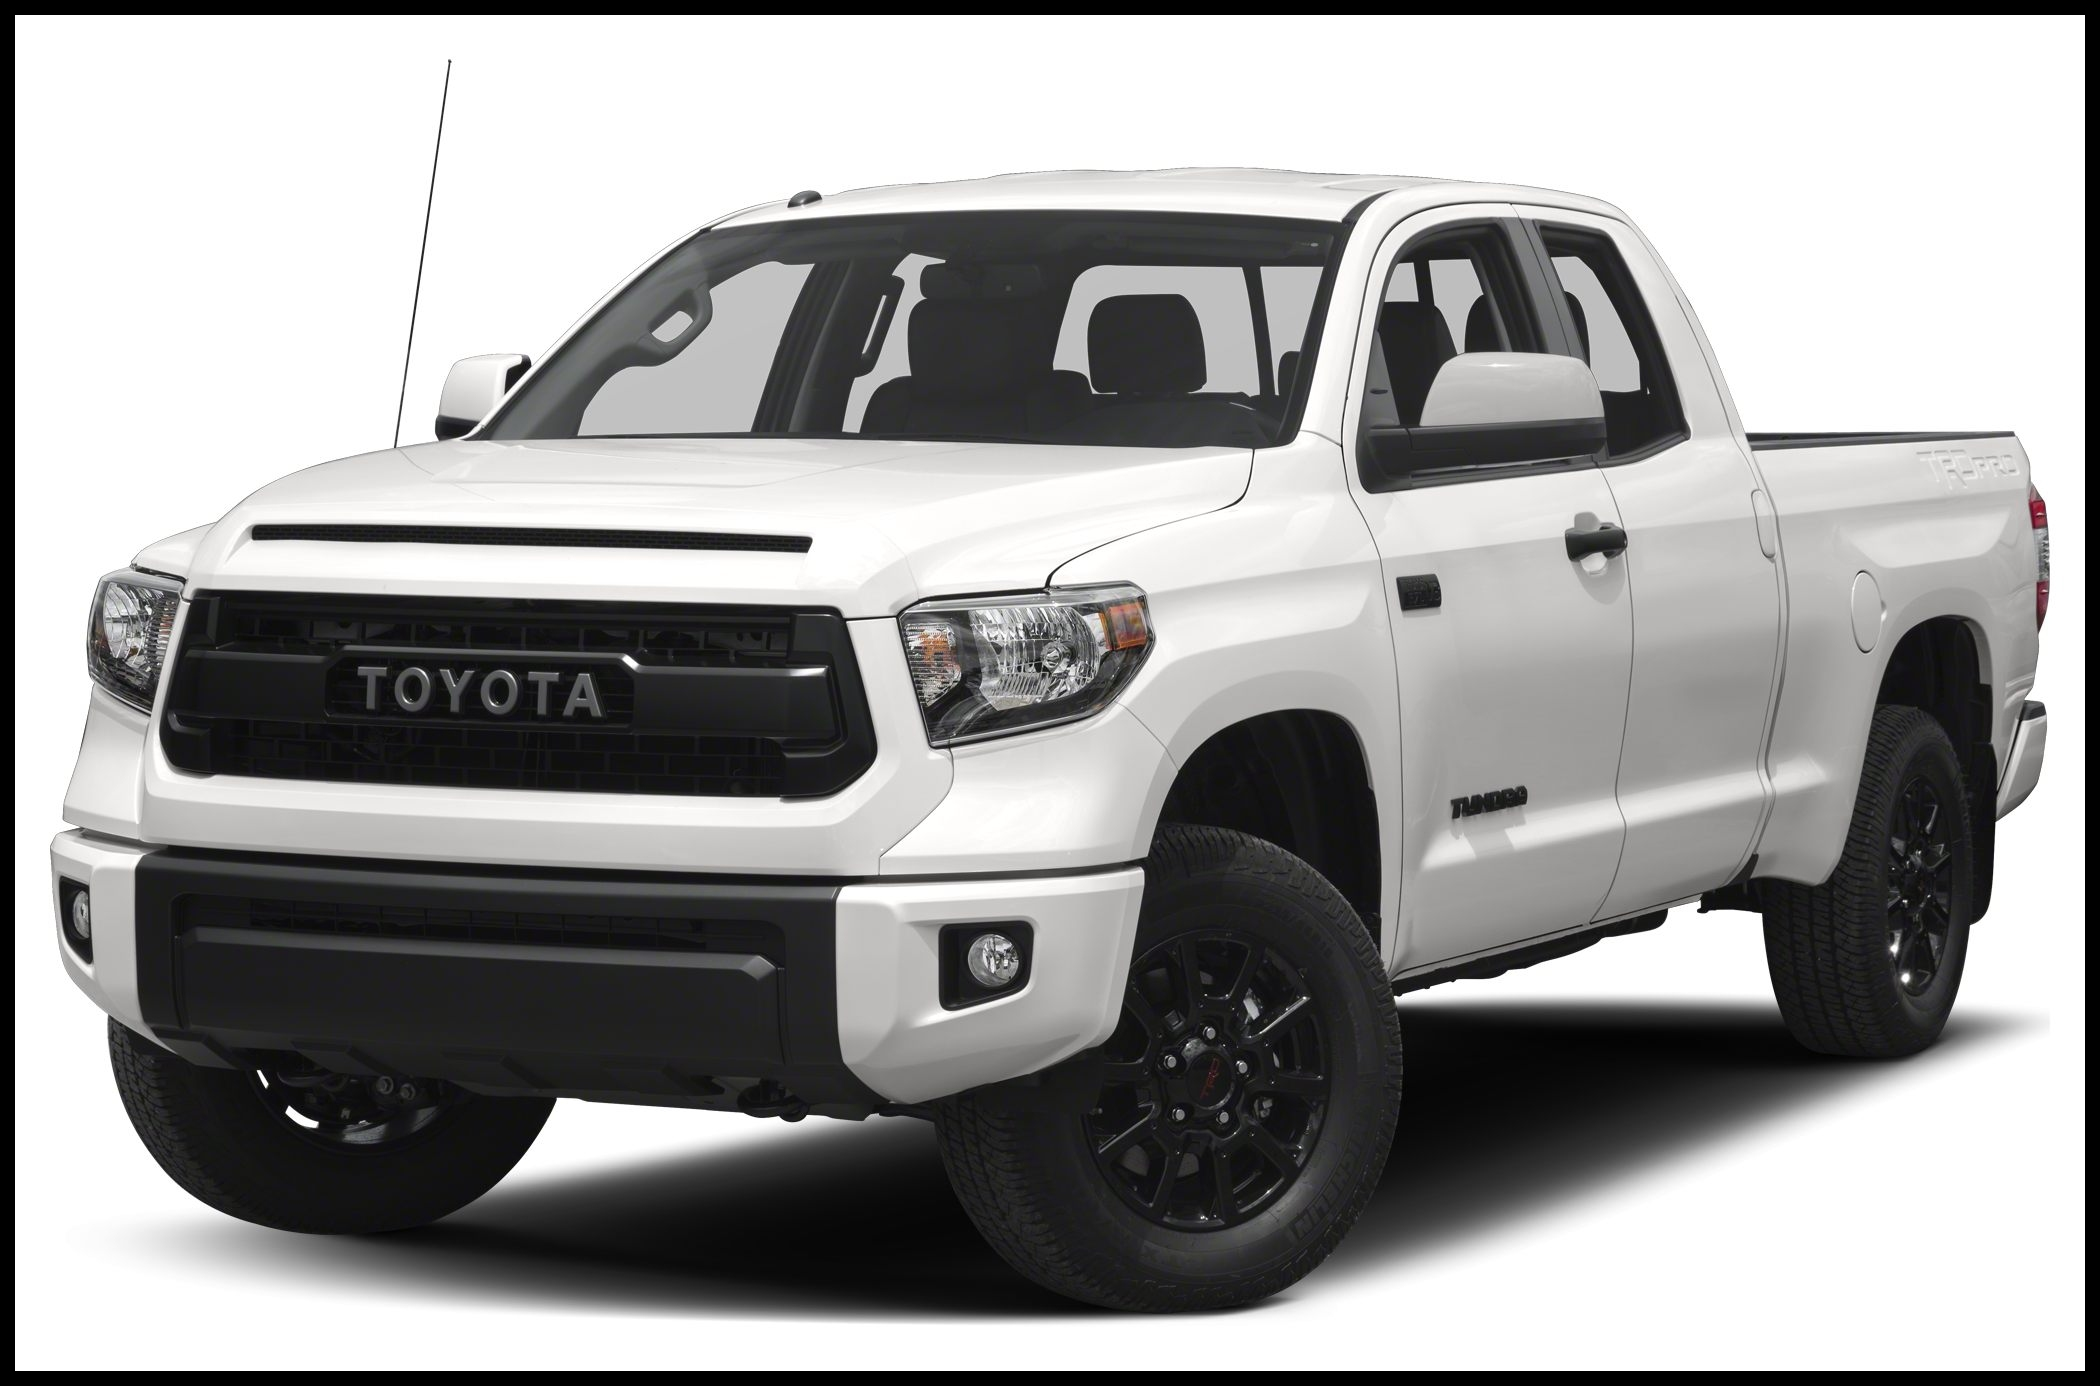 2017 Toyota Tundra TRD Pro 5 7L V8 4x4 Double Cab 6 6 ft box 145 7 in WB